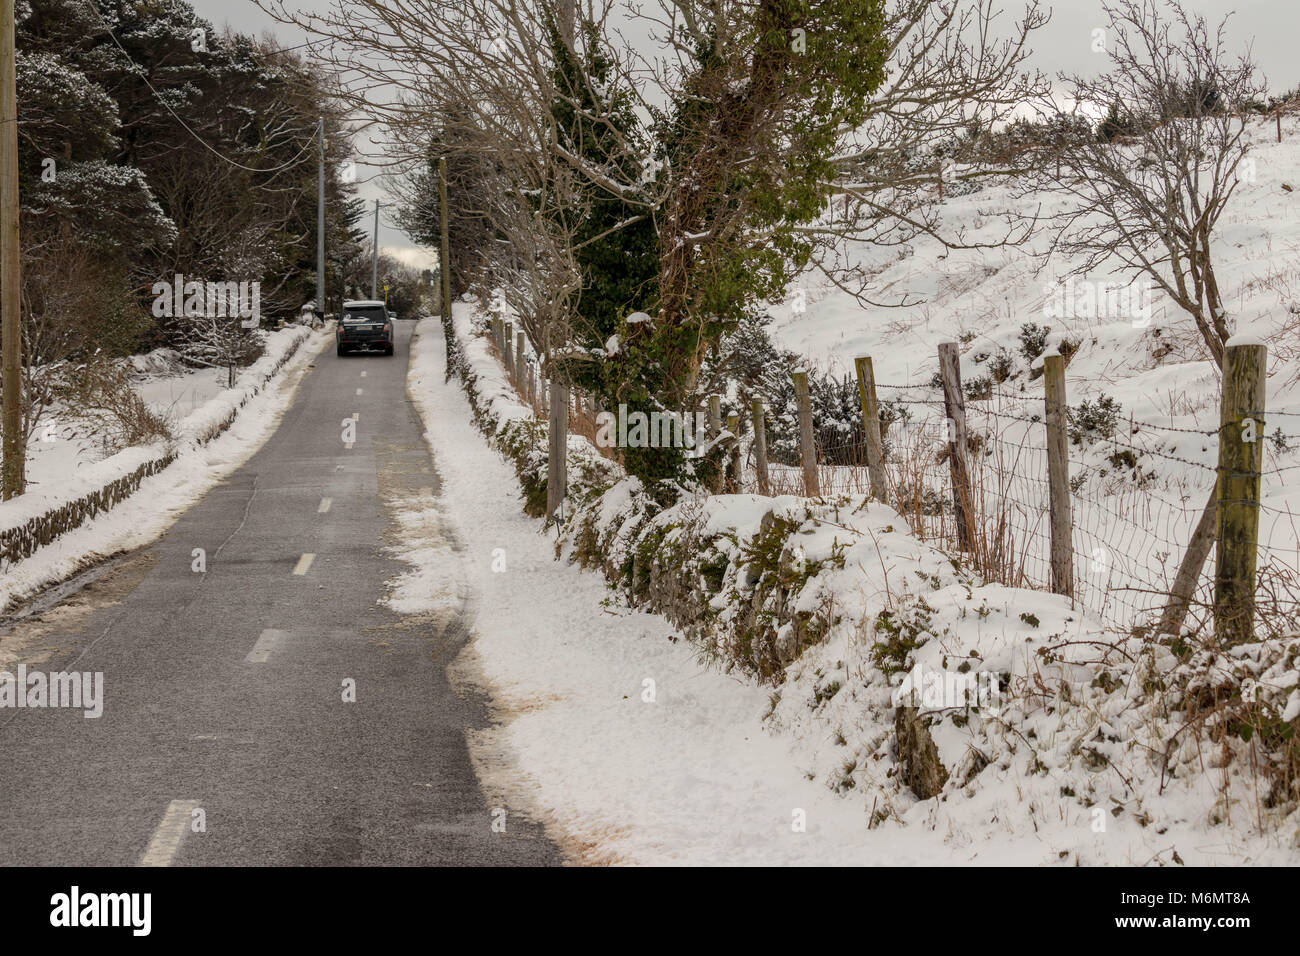 Deserted roads due to snow in the Dublin Mountains, March 2017. - Stock Image